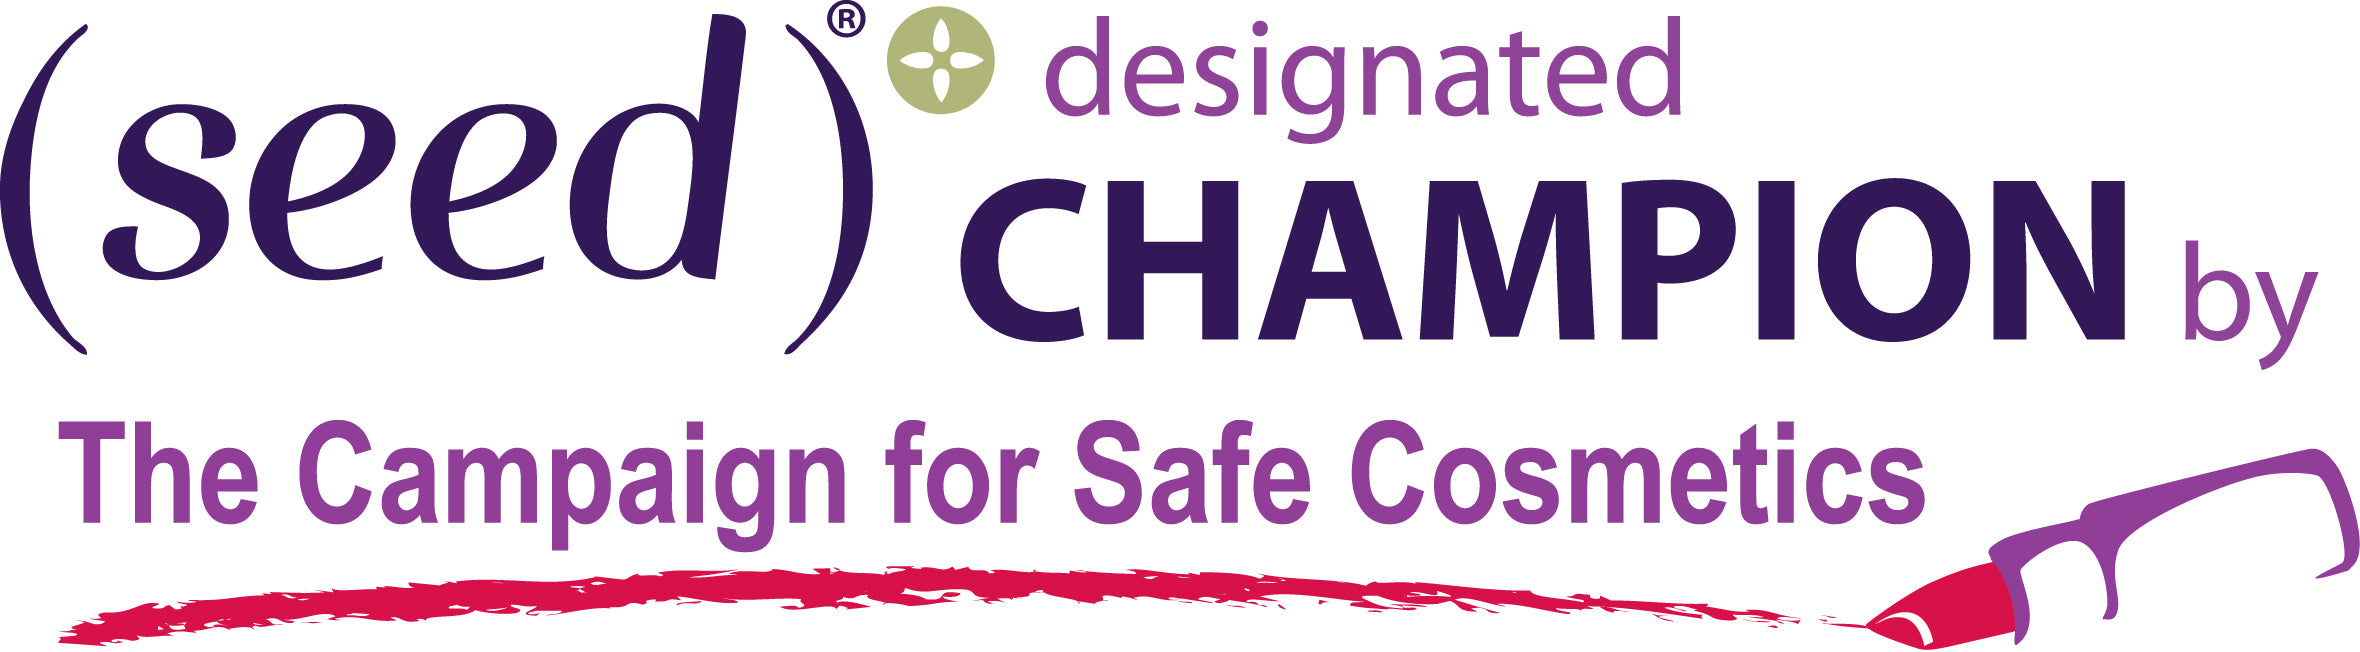 Seed has been designated Champion by the Campaign for Safe Cosmetics